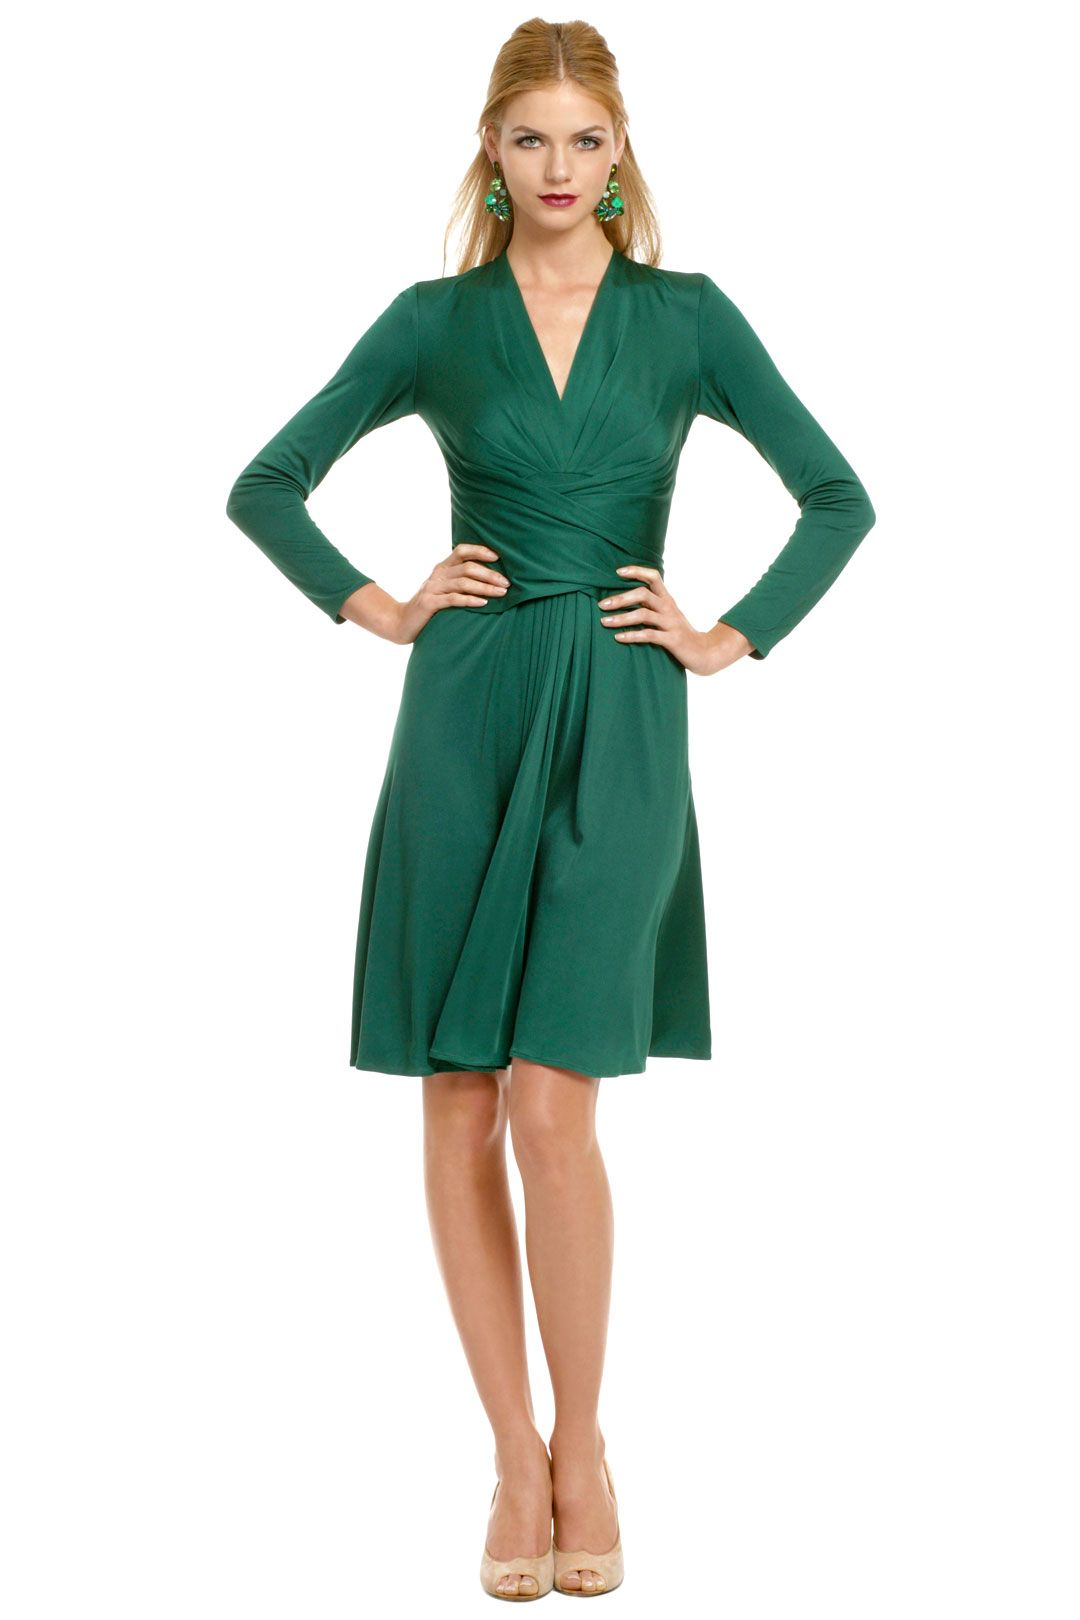 e91b0b440d22 ISSA-- Green Royal Wrap Dress The same one that Kate wore for their  engagement photos, but in green!